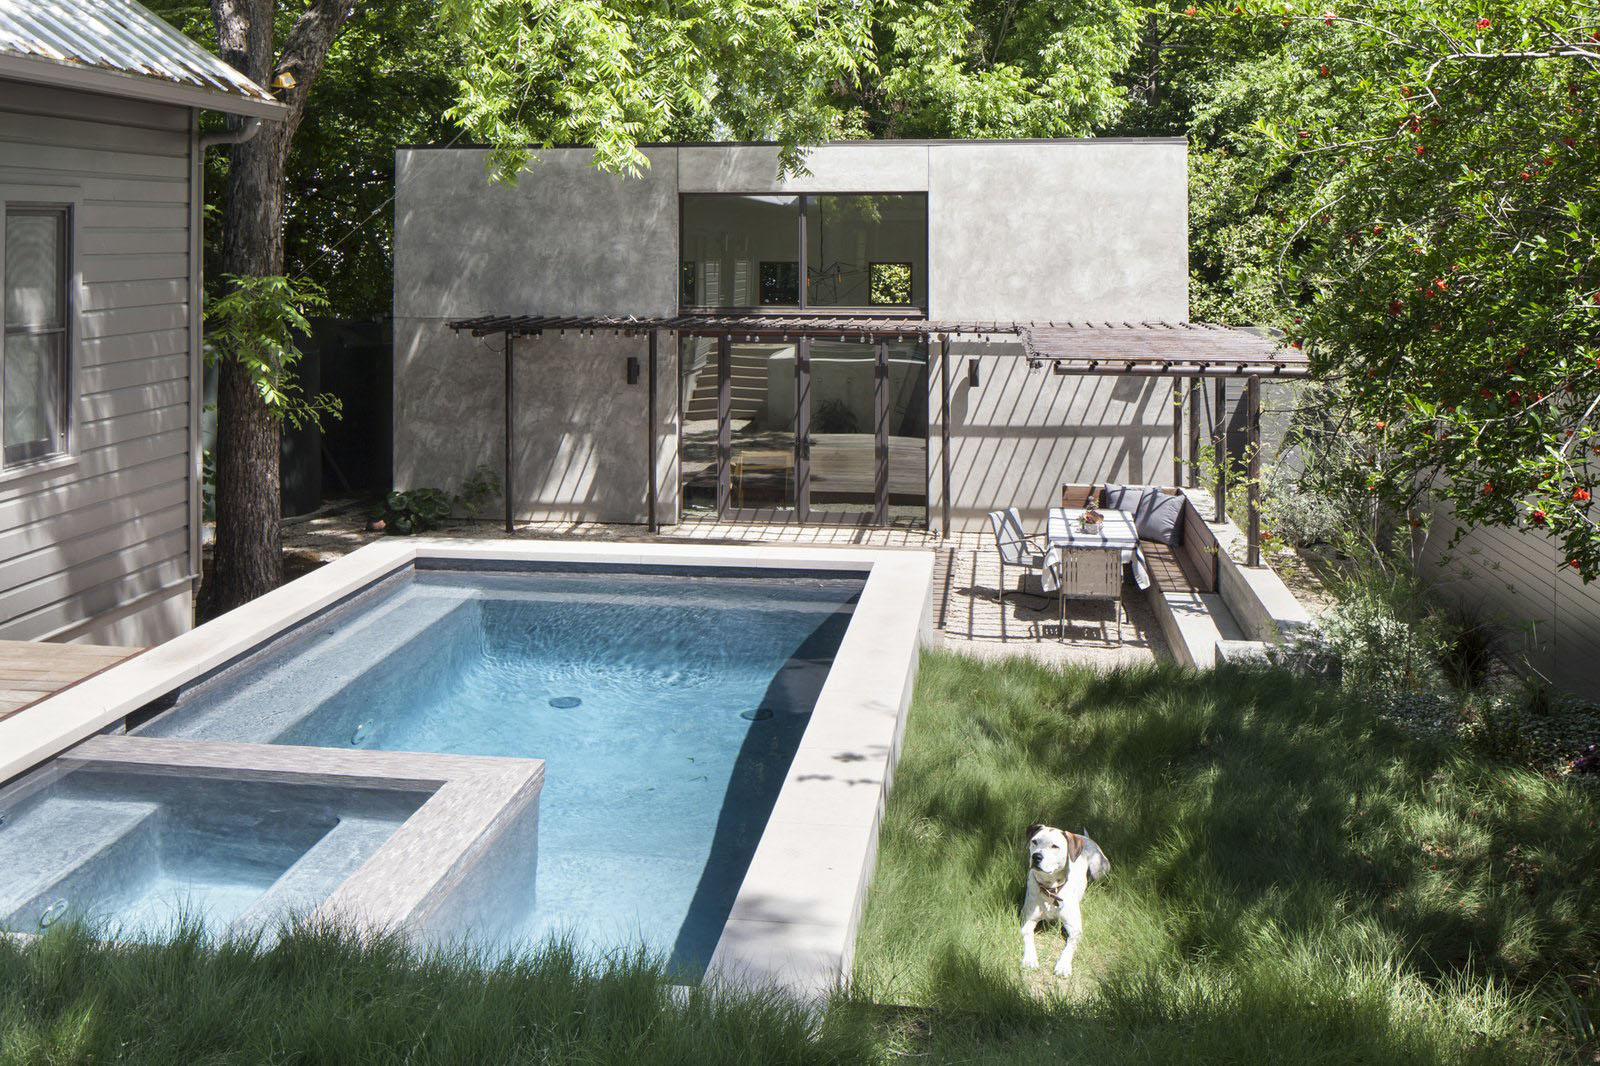 Double Height Casita And New Pool Added To A Small